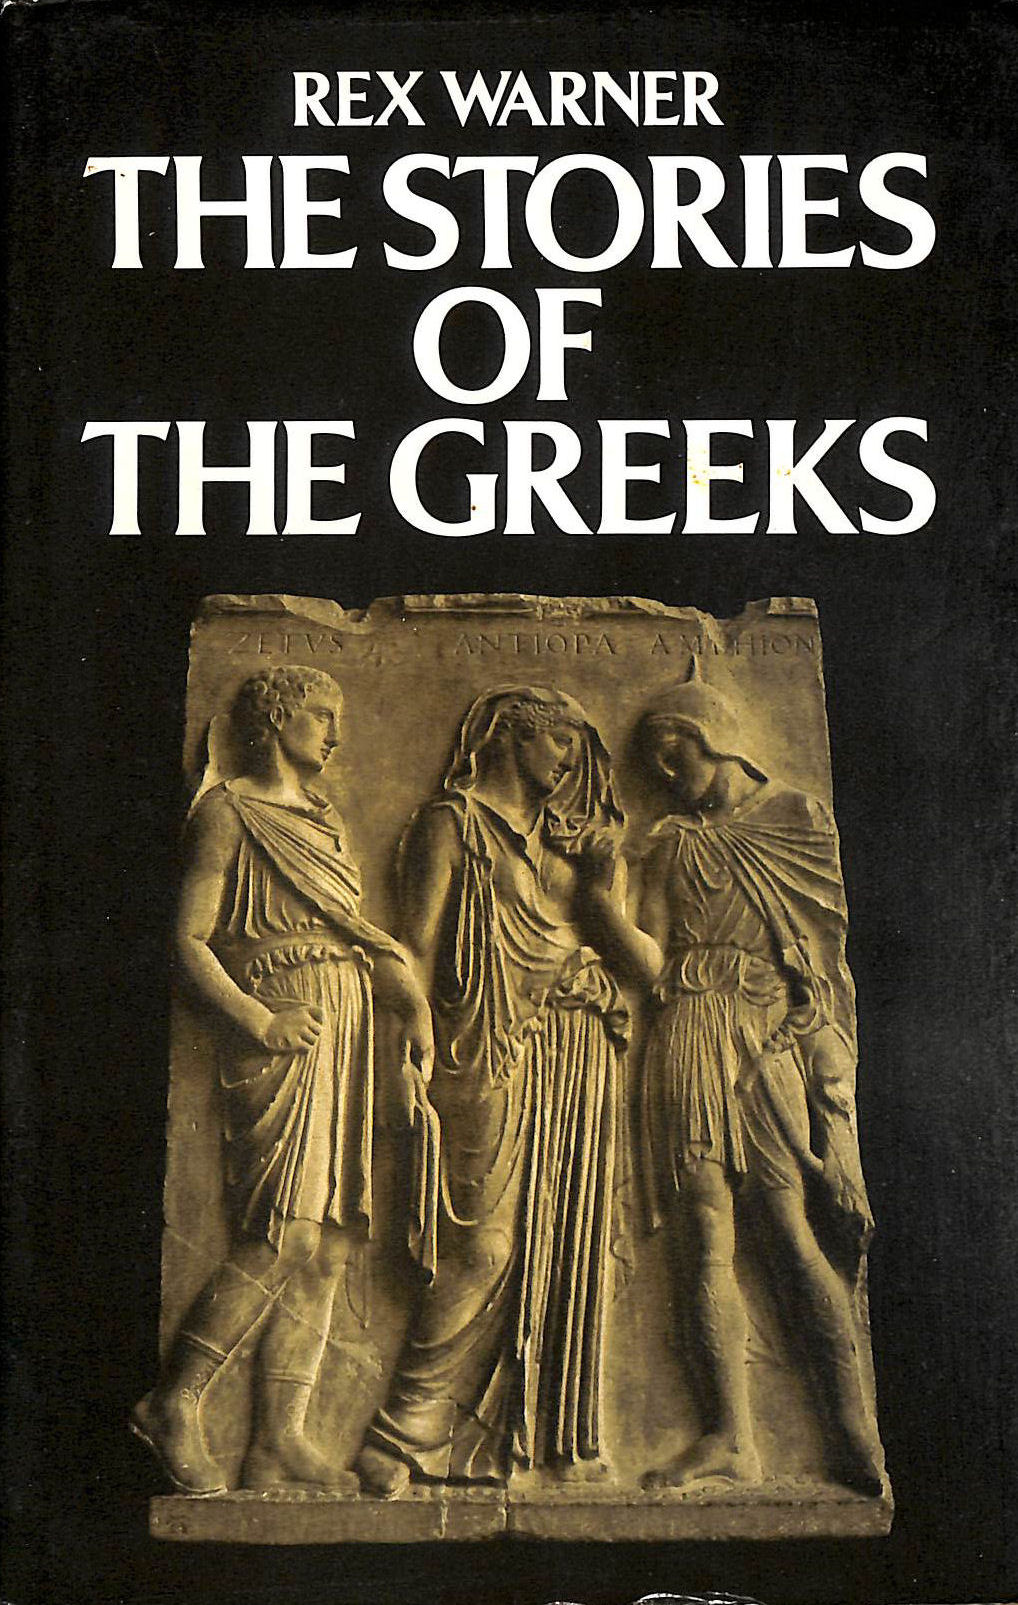 Image for THE STORIES OF THE GREEKS. Men and Gods. Greeks and Trojans. The Vengeance of the Gods.